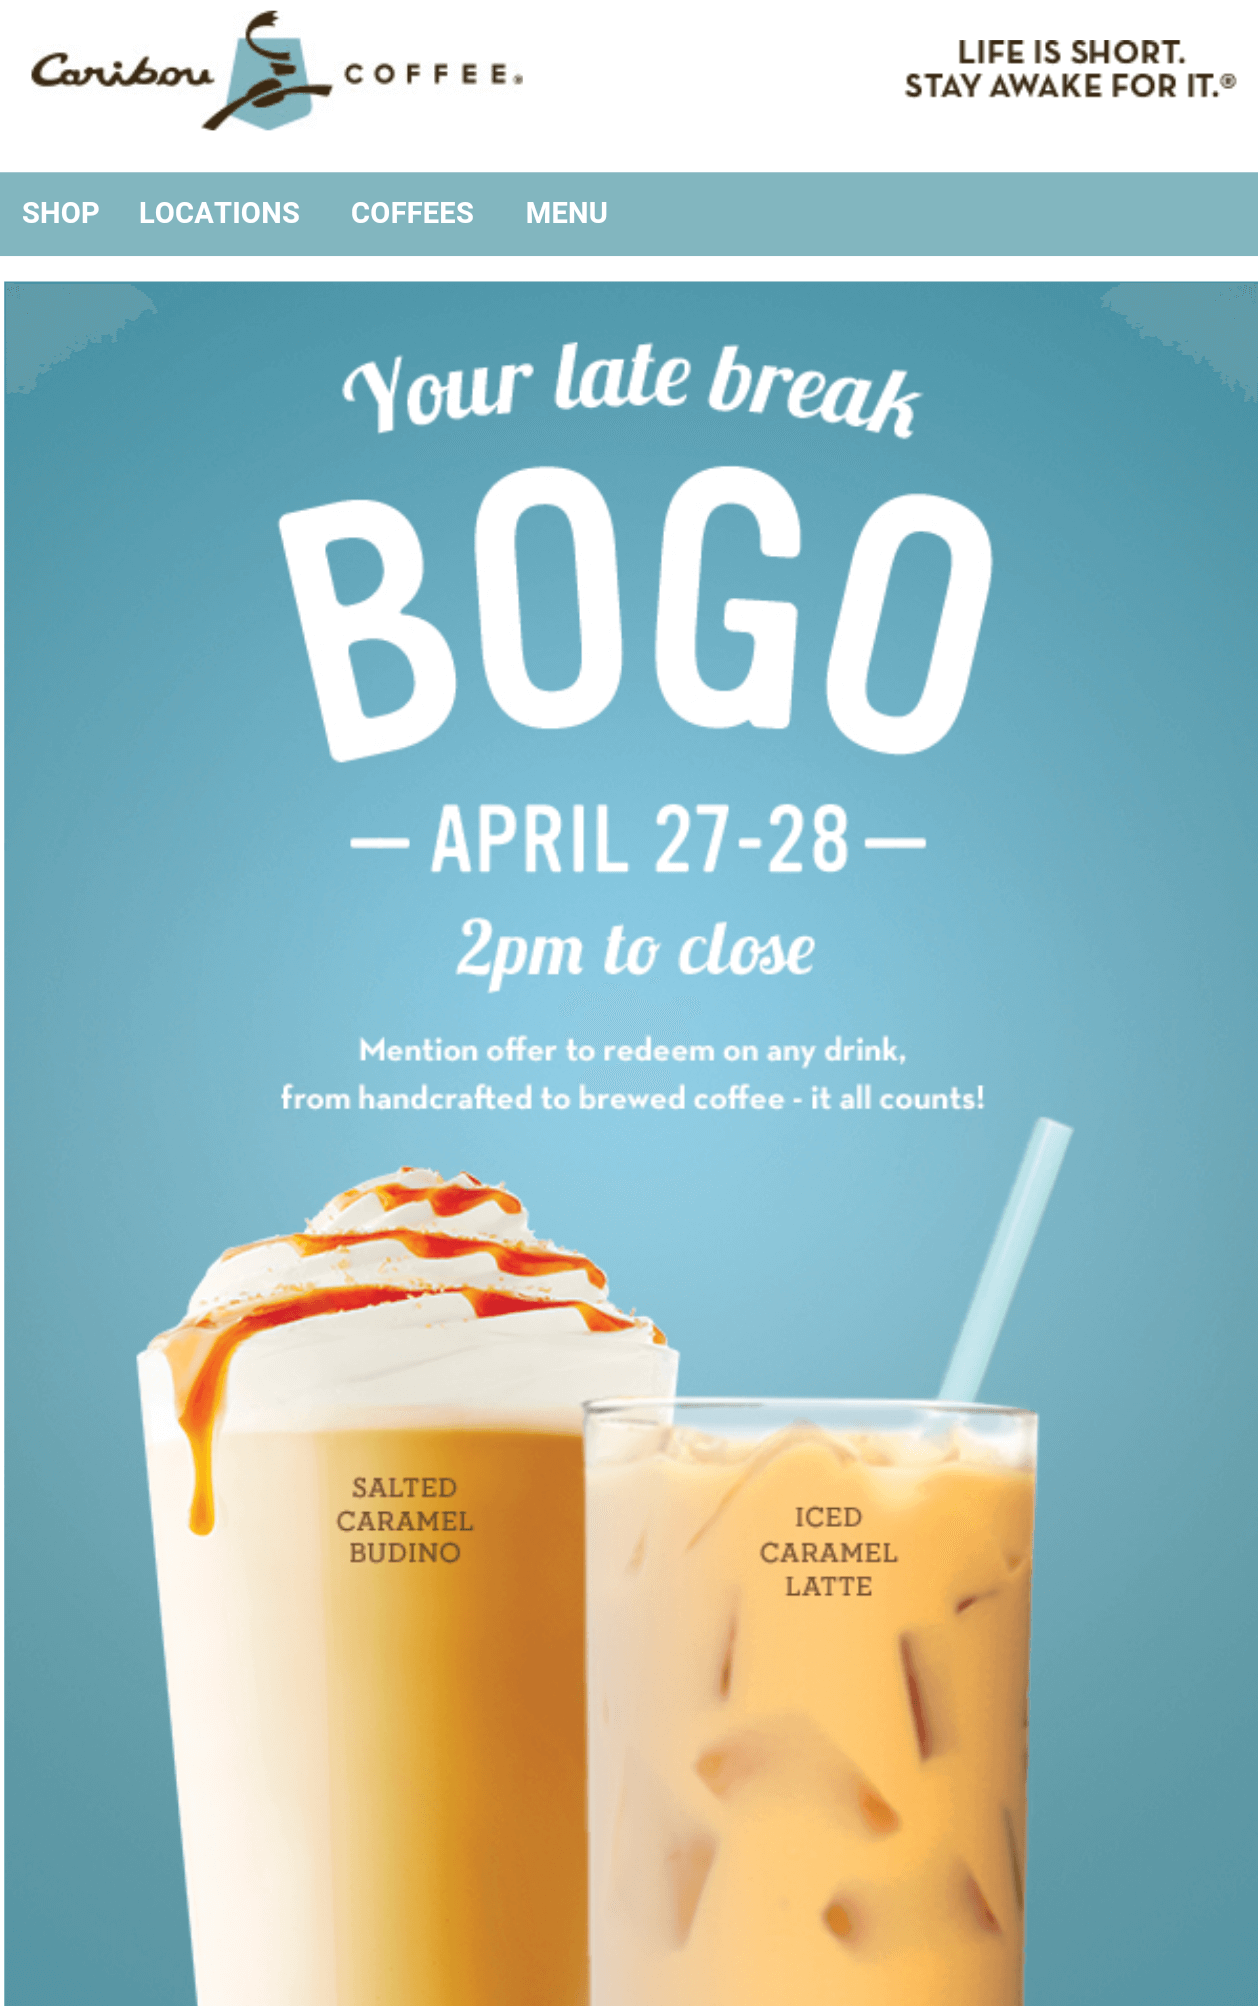 Caribou Coffee Coupon May 2018 Second drink free after 2p today at Caribou Coffee